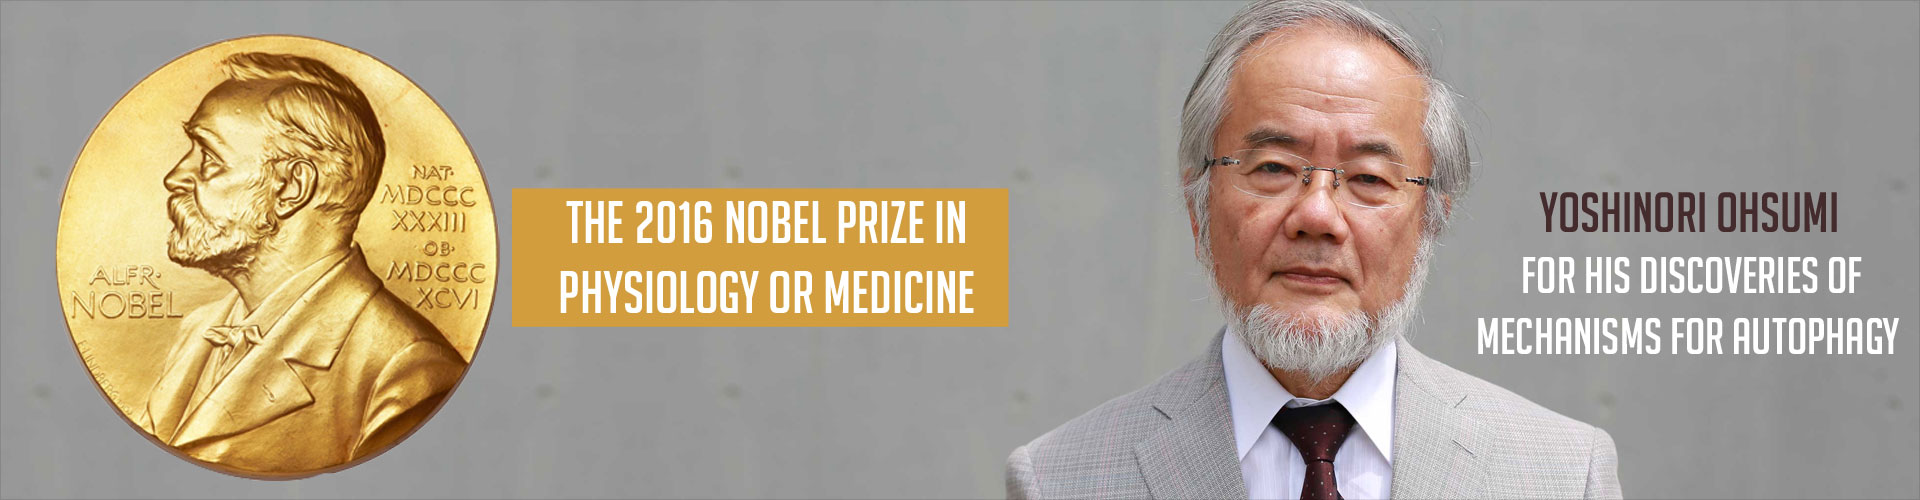 Nobel Prize 2016 in Medicine Goes to Yoshinori Ohsumi for Work on Autophagy